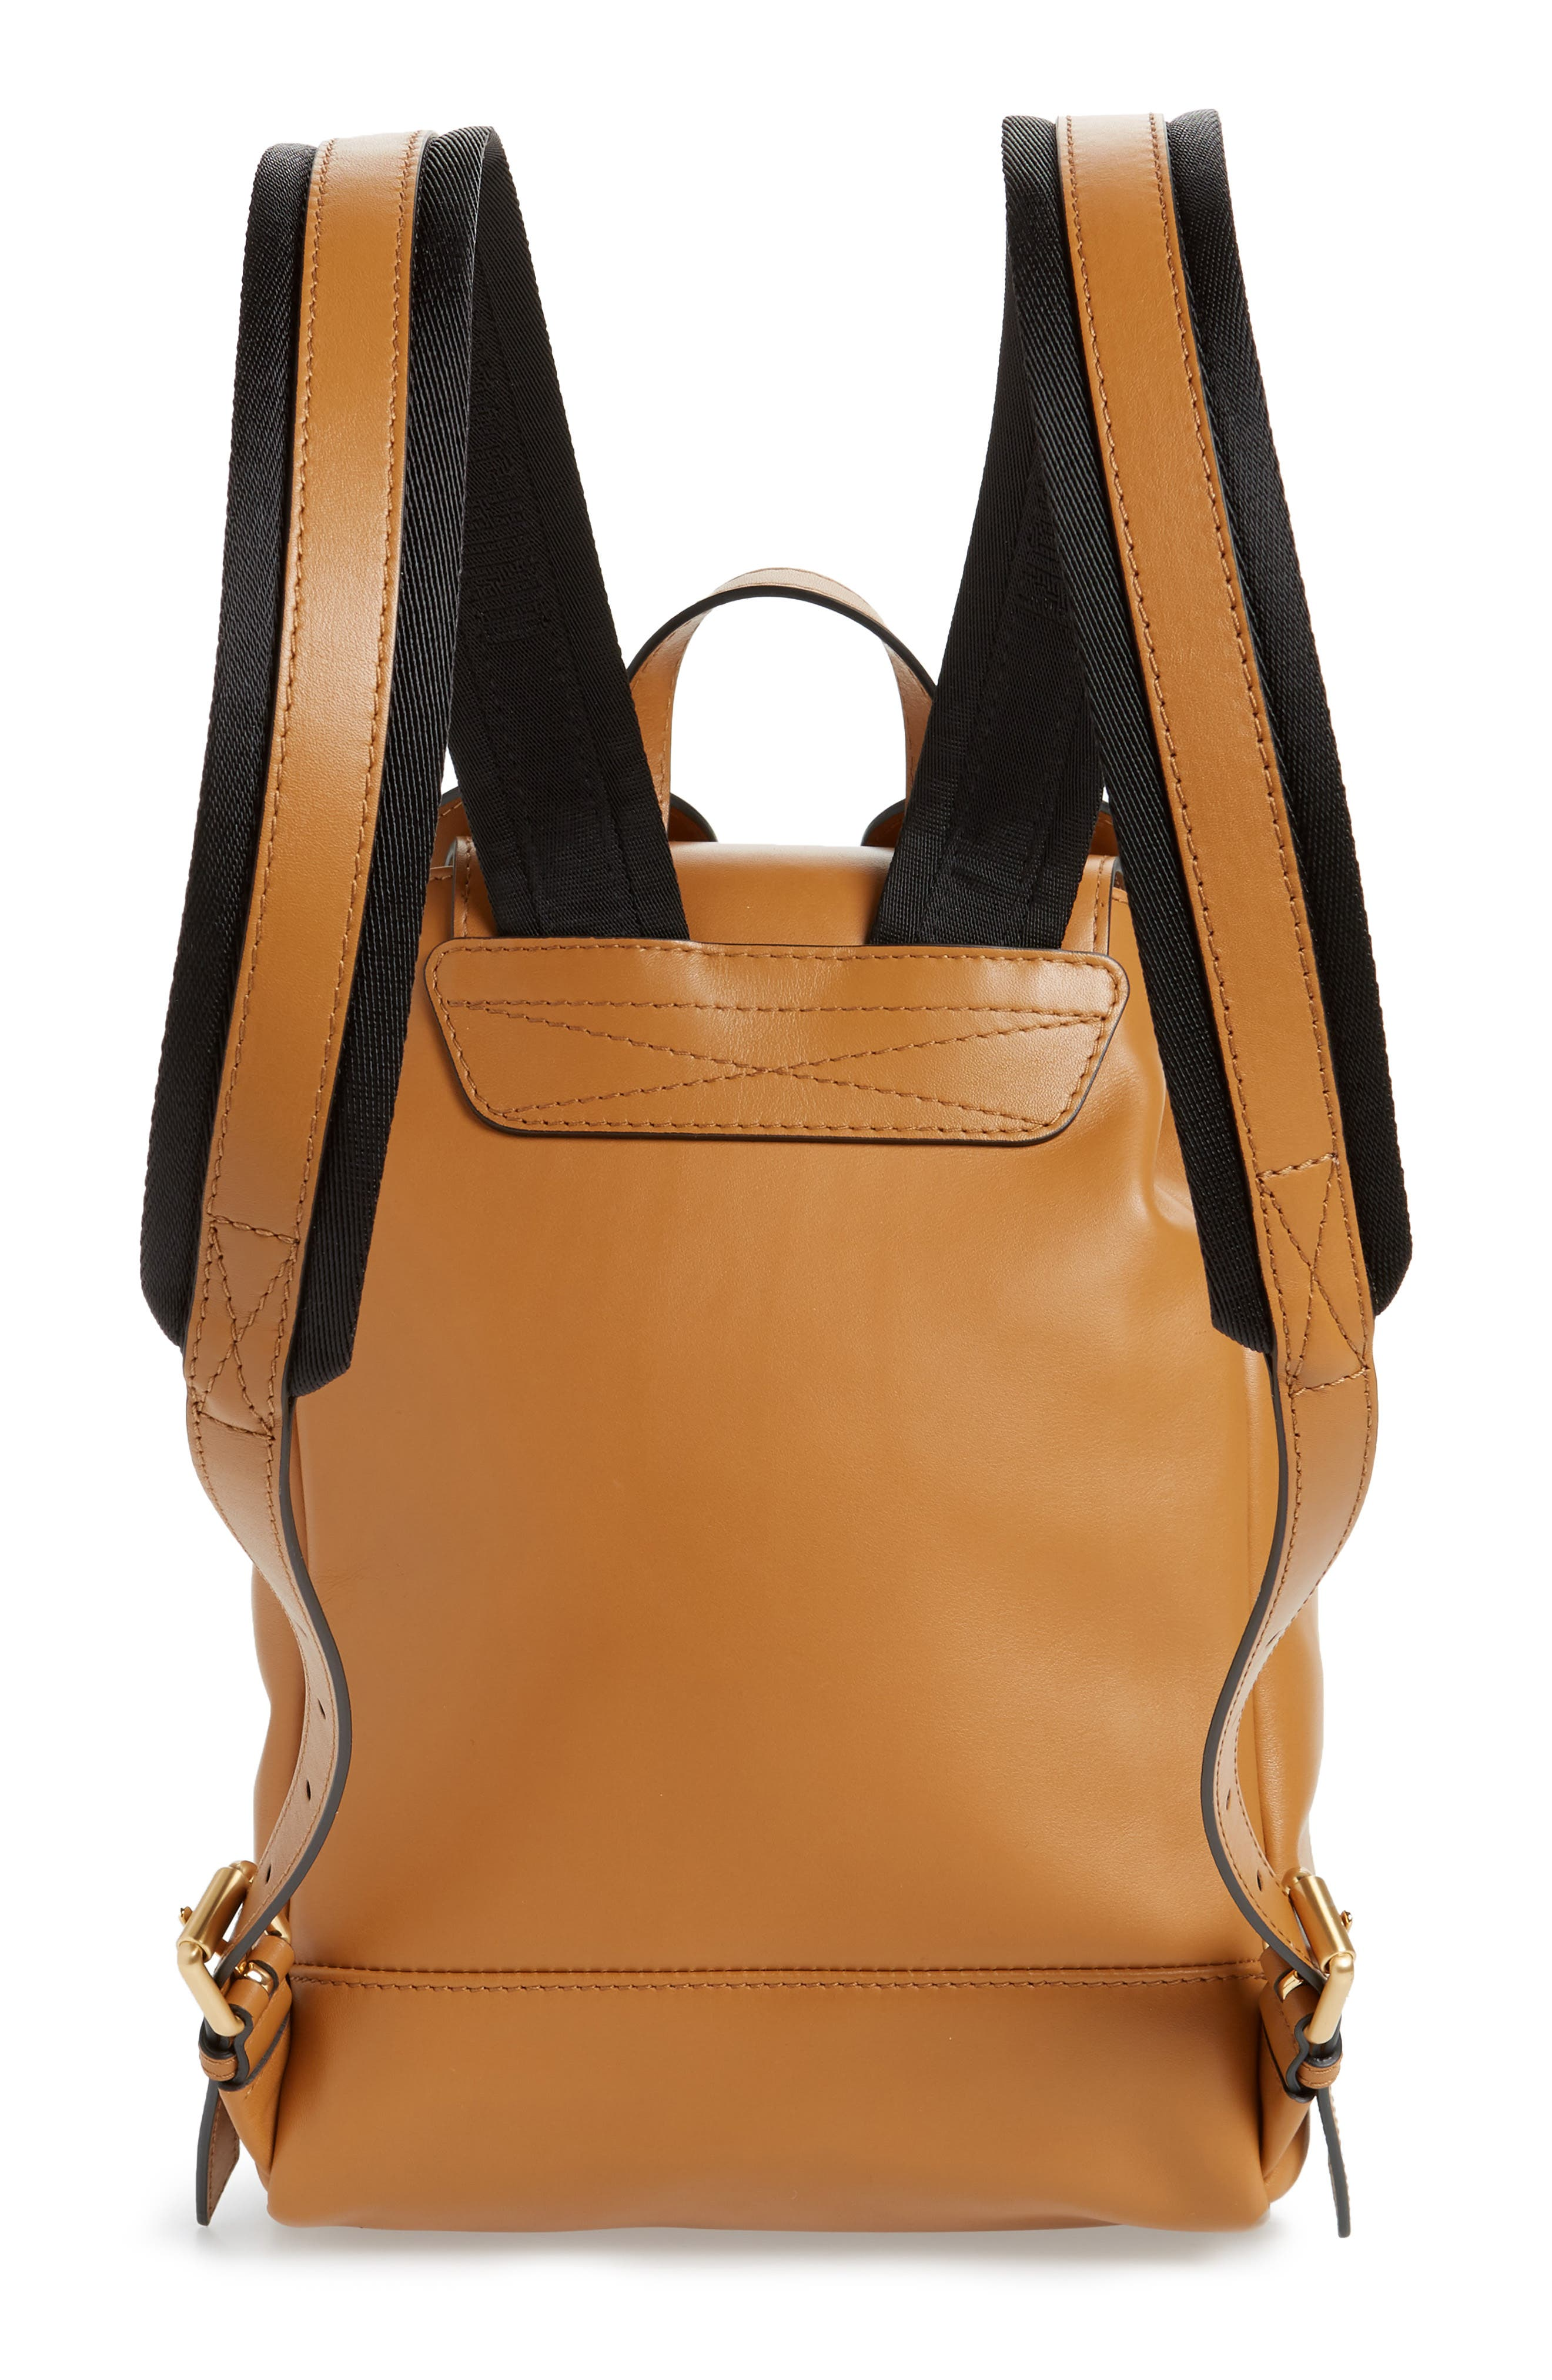 MOSCHINO, Teddy Bear Faux Leather Backpack, Alternate thumbnail 3, color, BROWN